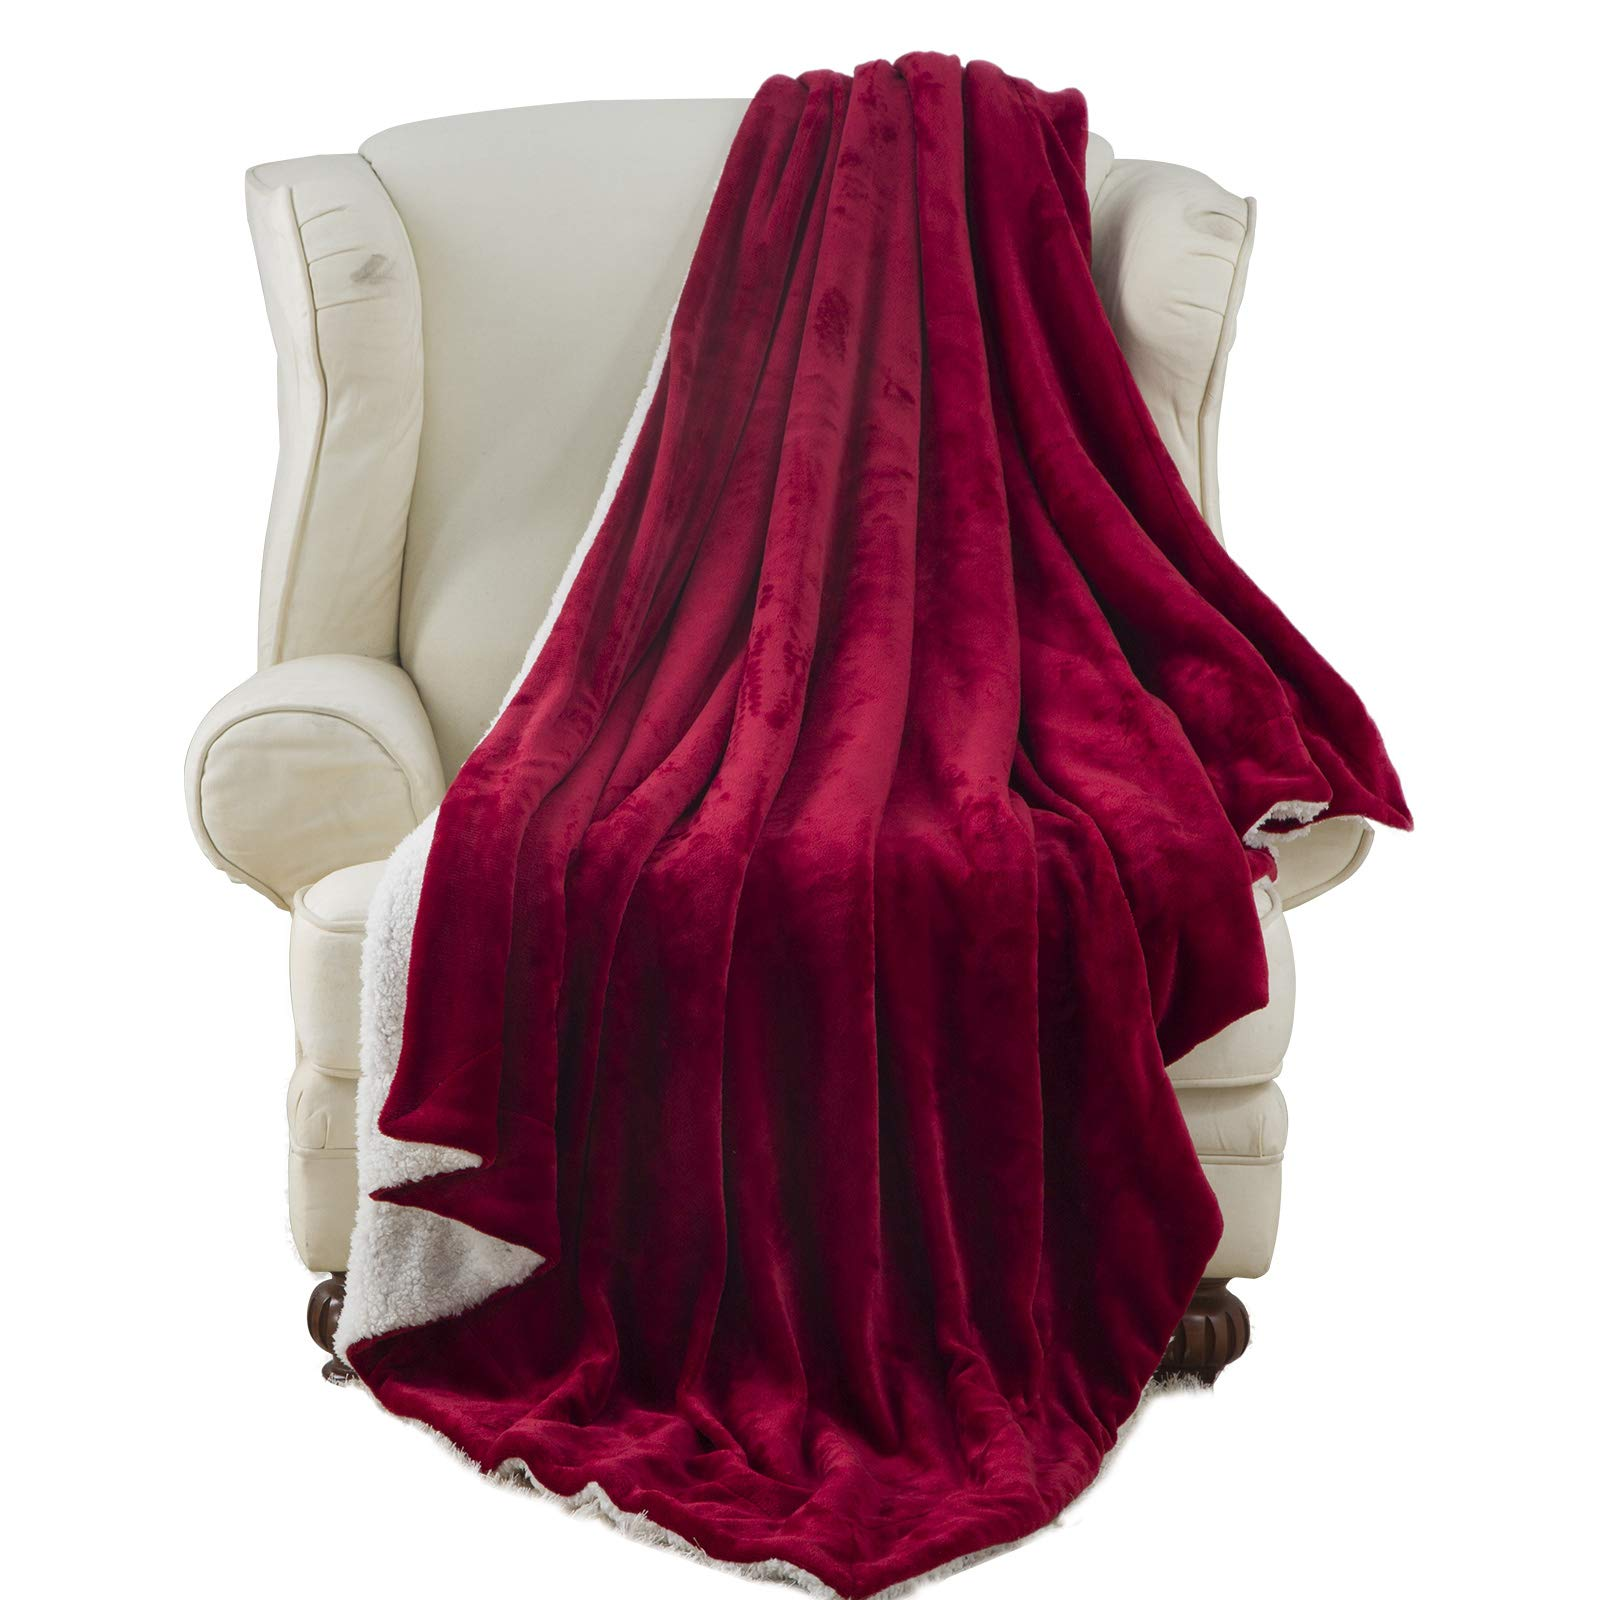 Moonen Sherpa Throw Blanket Luxurious Throw Size Brush Fabric Reversible All Season Super Soft Warm Fleece Thick Fuzzy Microplush Blanket for Bed Couch and Gift Blankets (Burgundy, 50x60 Inches)